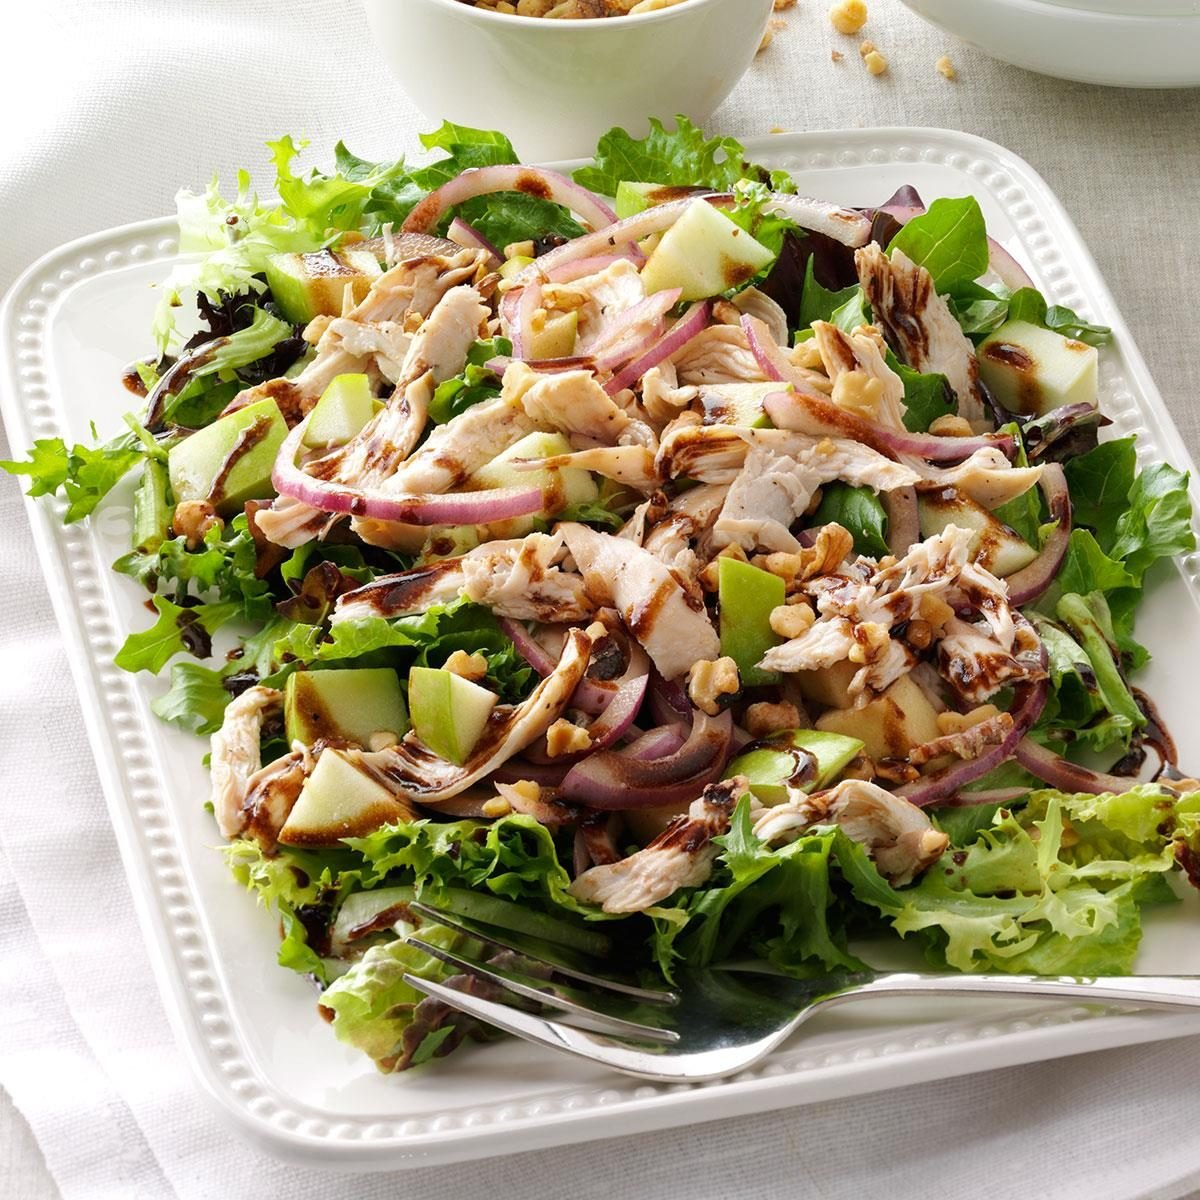 Inspired by: Fuji Apple with Chicken Salad